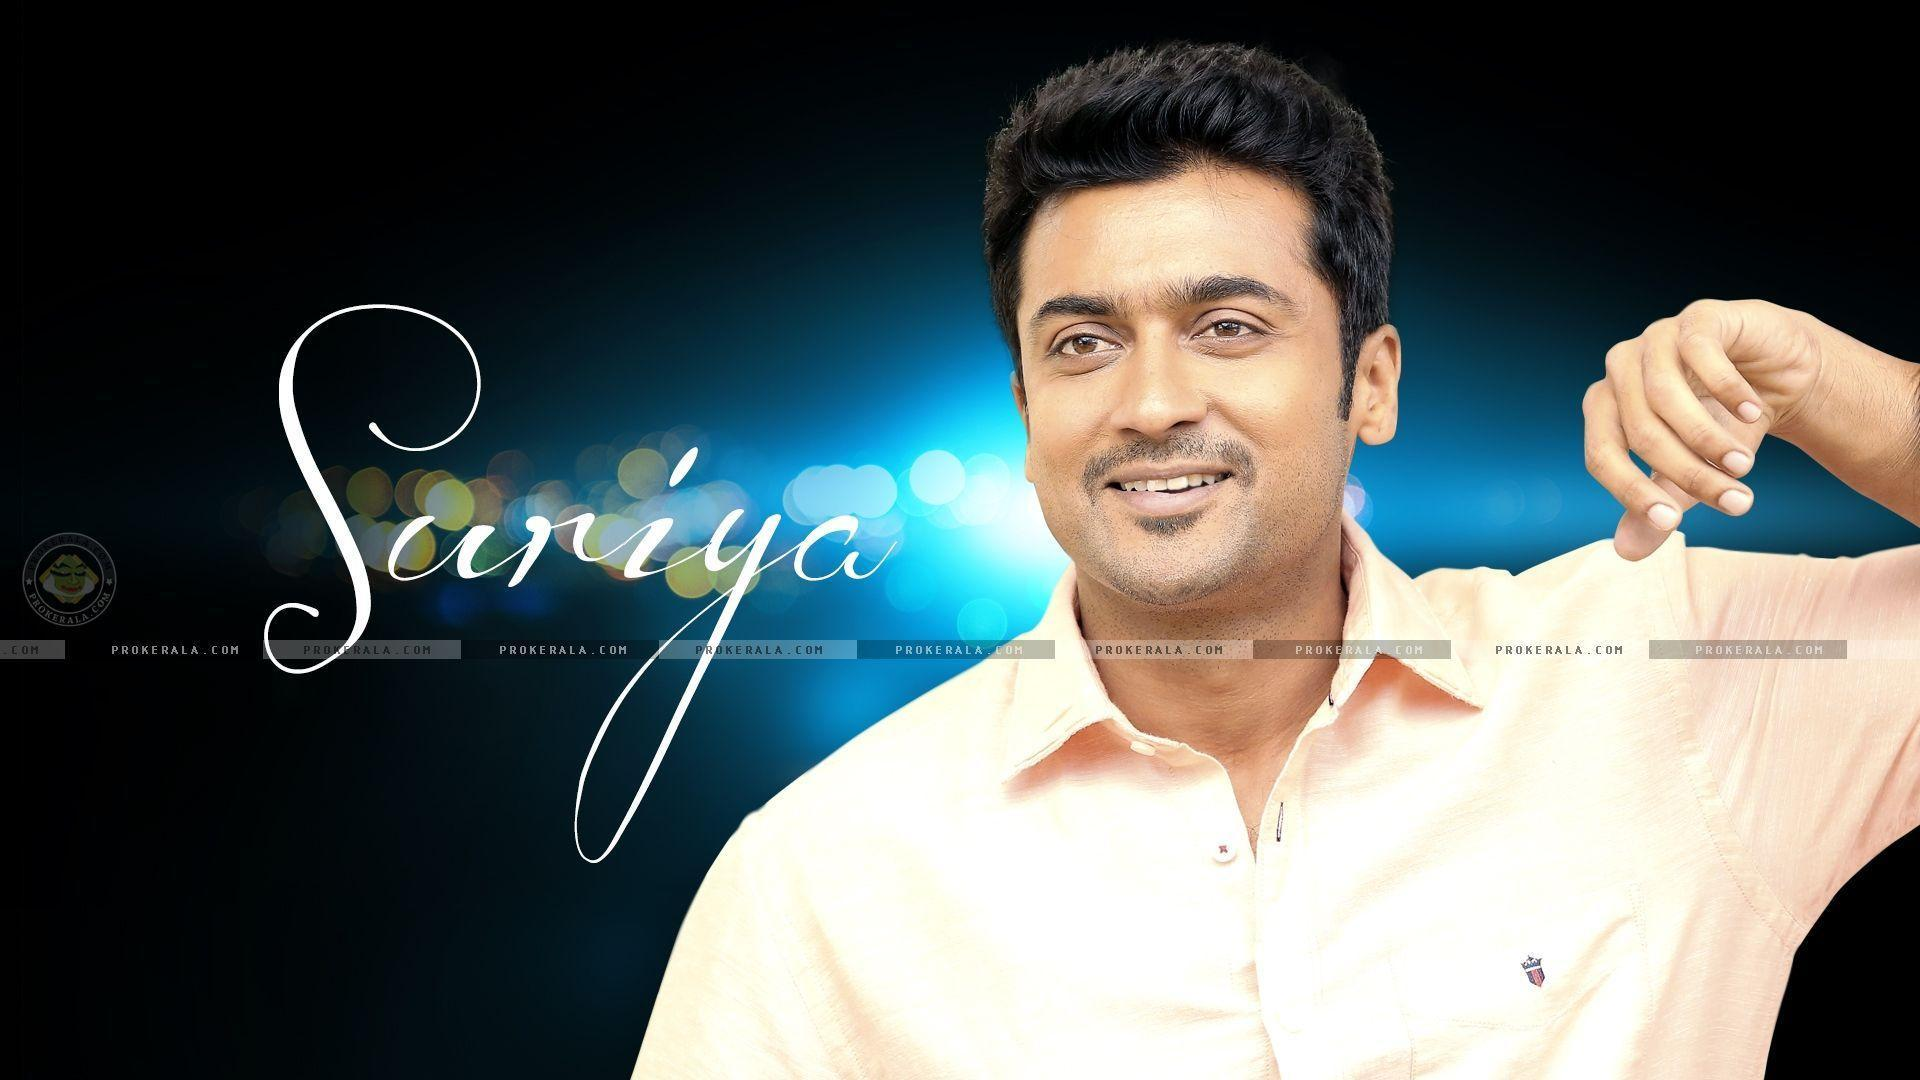 All About Surya Only About Surya 24 The Movie: WallpaperSafari